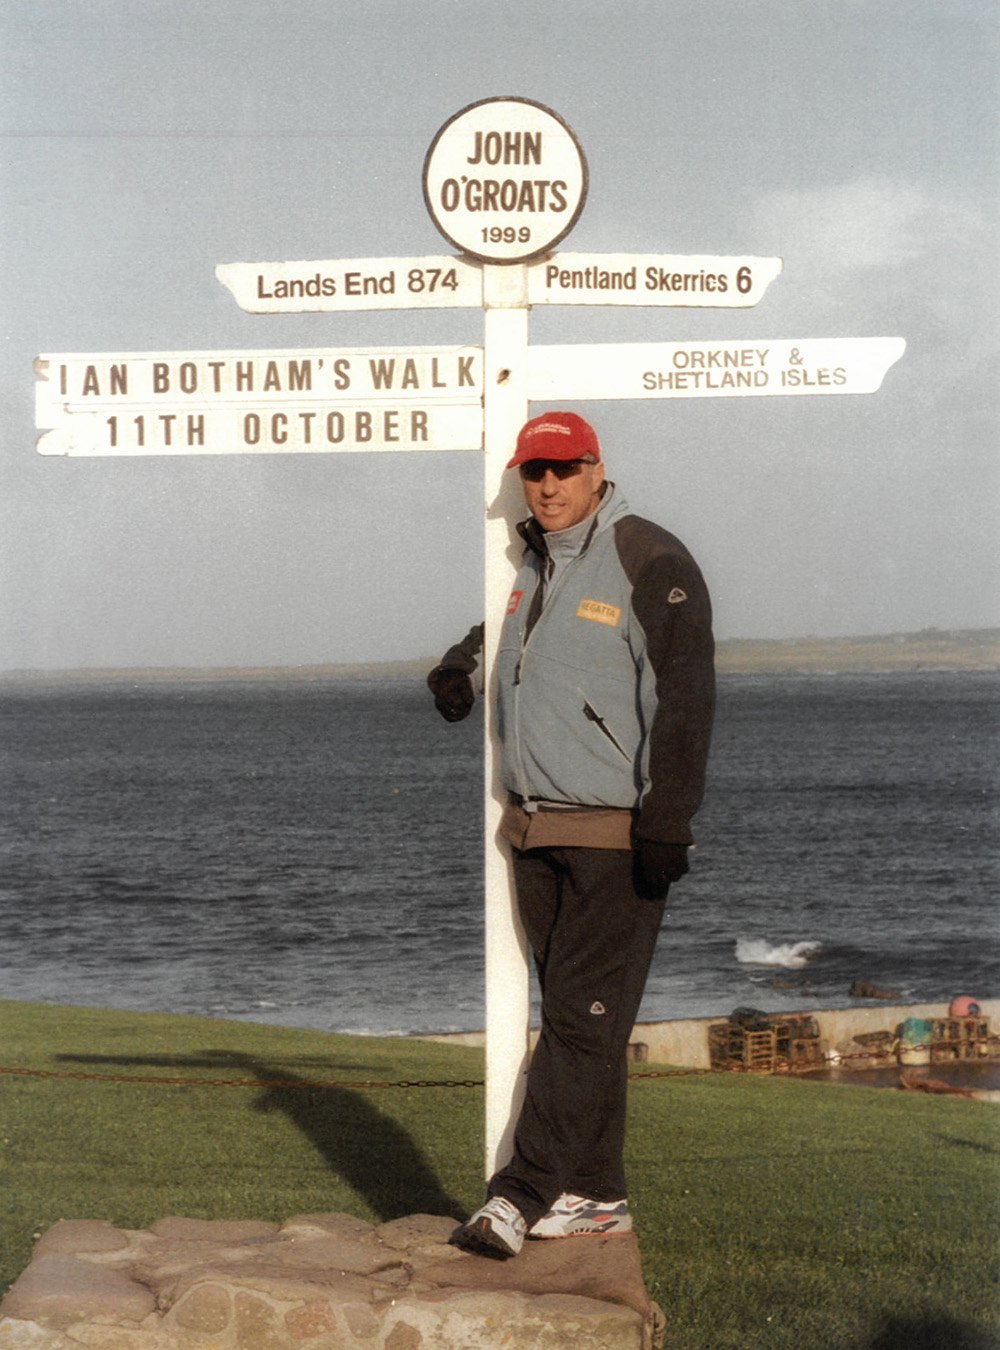 1999 - John O Groats to Lands End - 985 miles